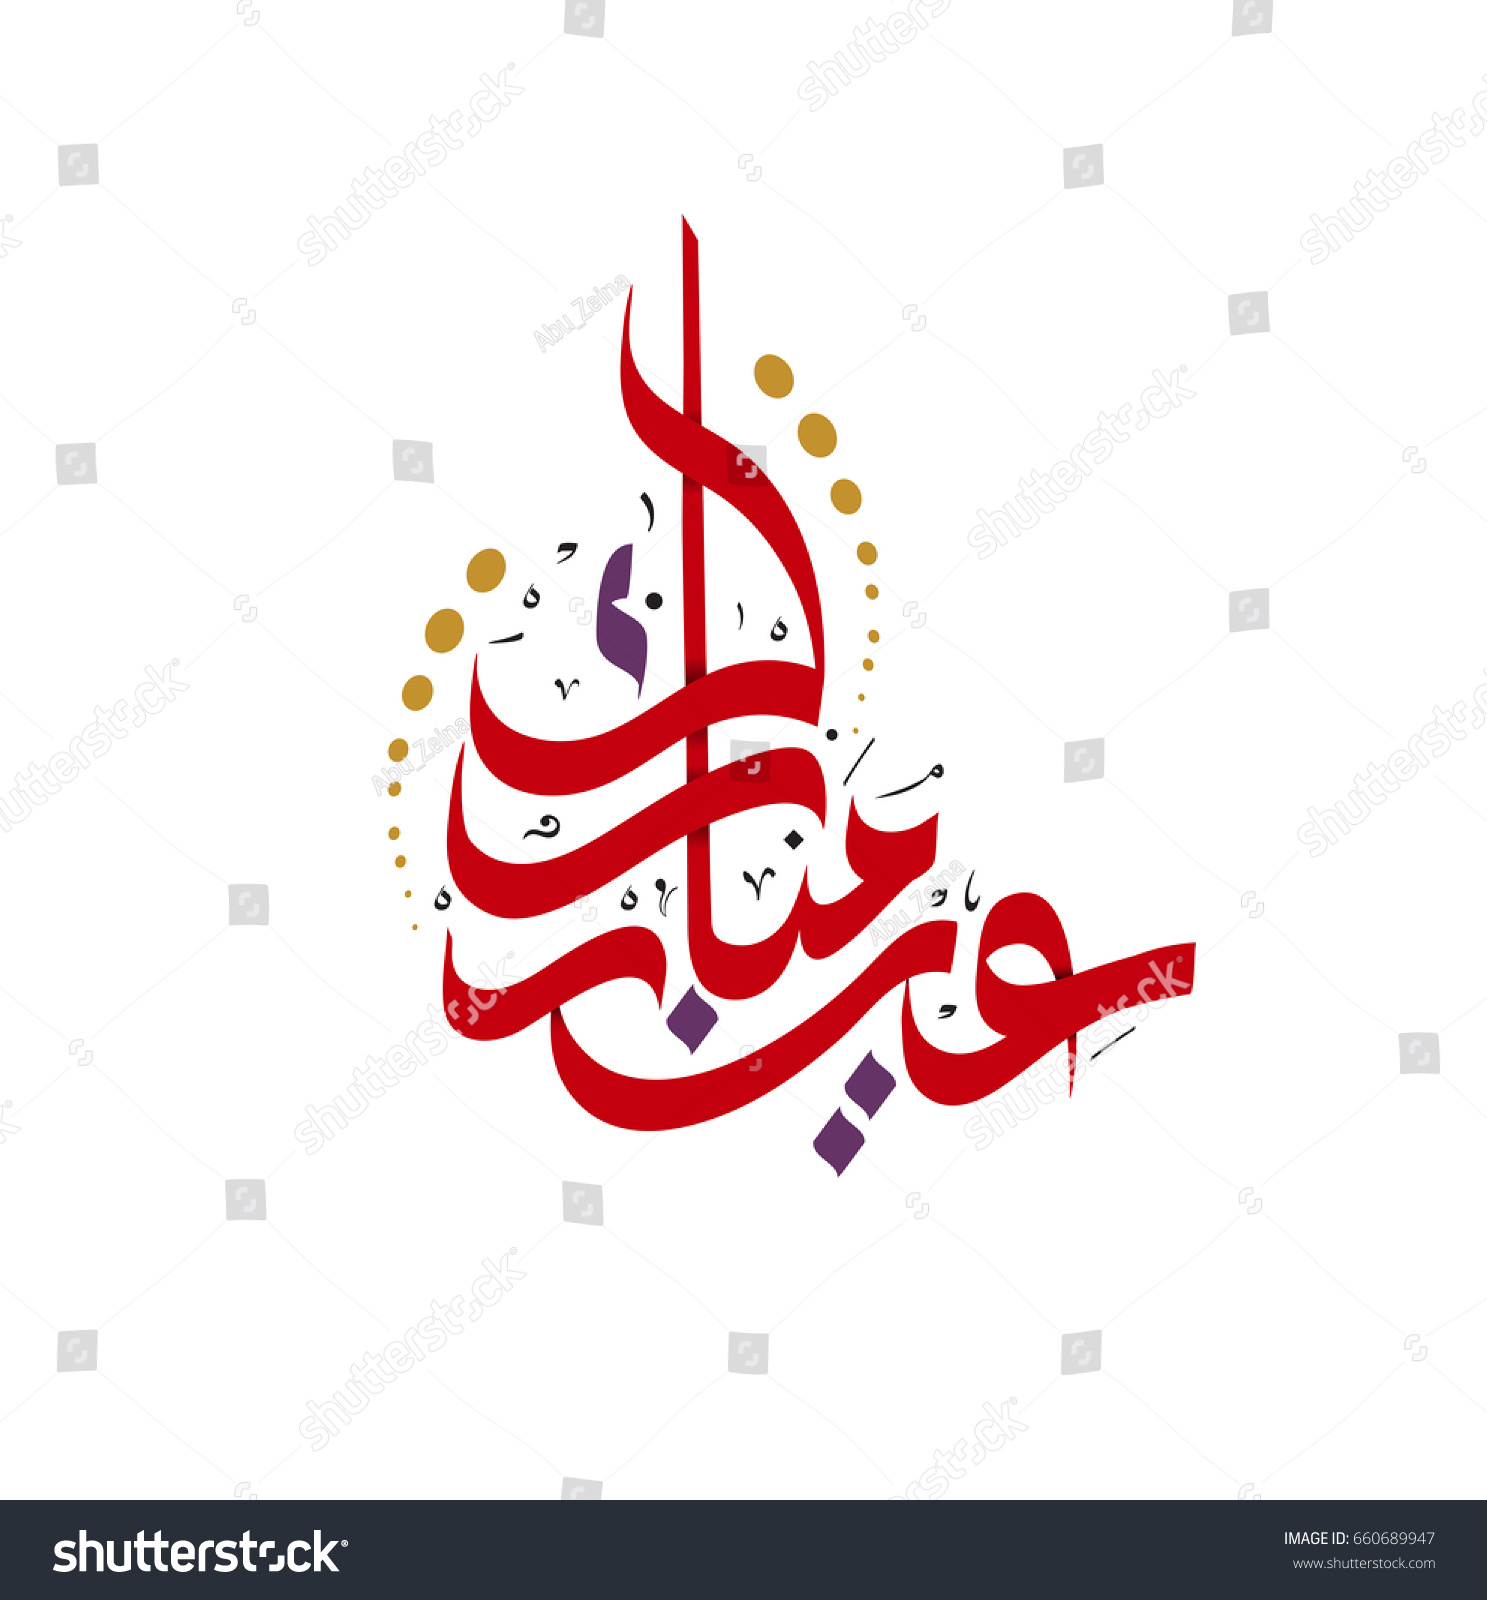 Creative arabic calligraphy type eid greeting stock vector creative arabic calligraphy type for eid greeting eid mubarak calligraphy translated as blessed kristyandbryce Image collections